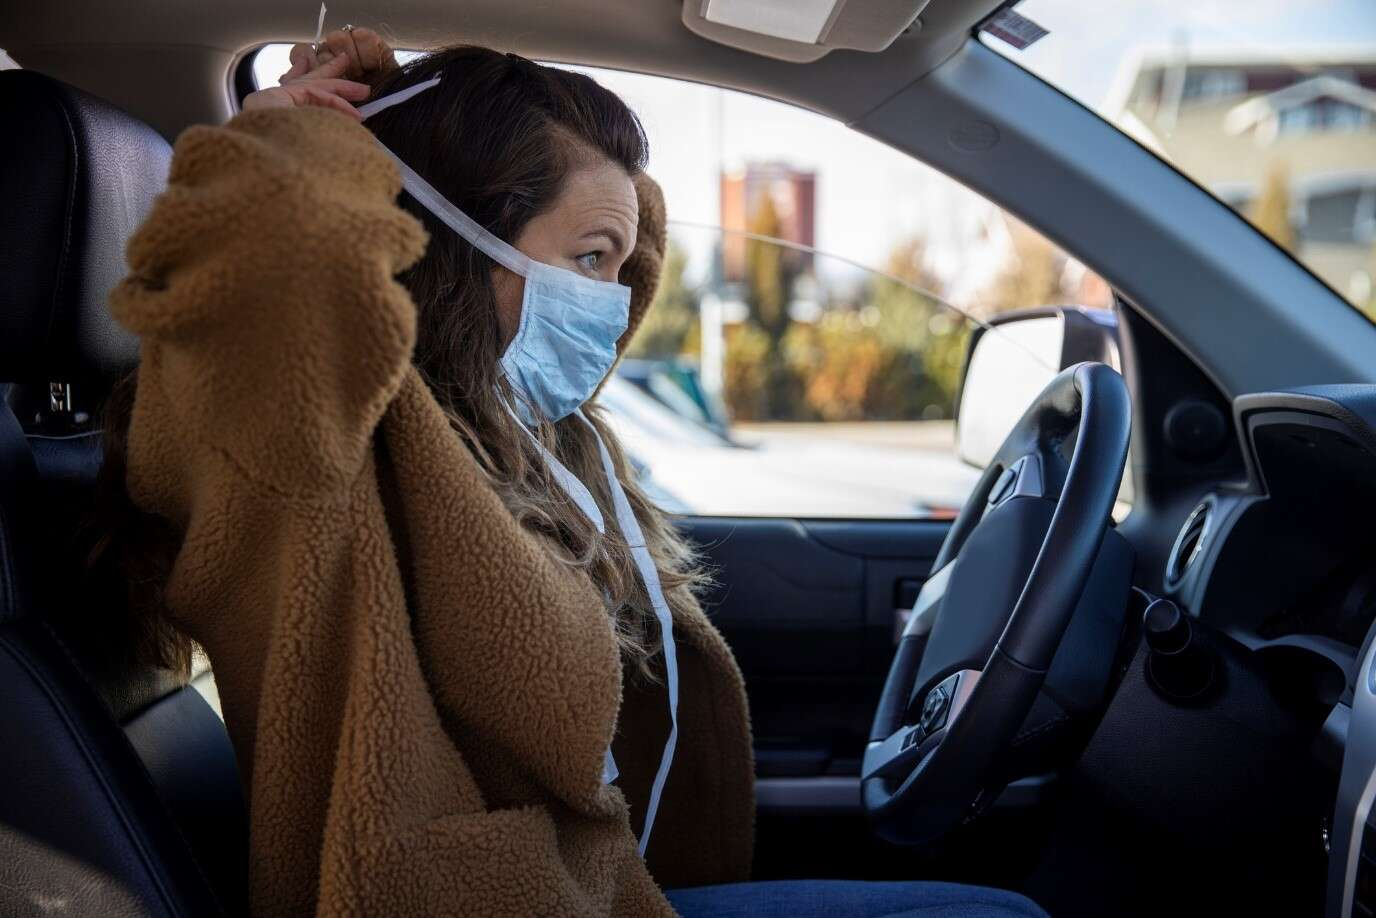 woman putting mask on in car